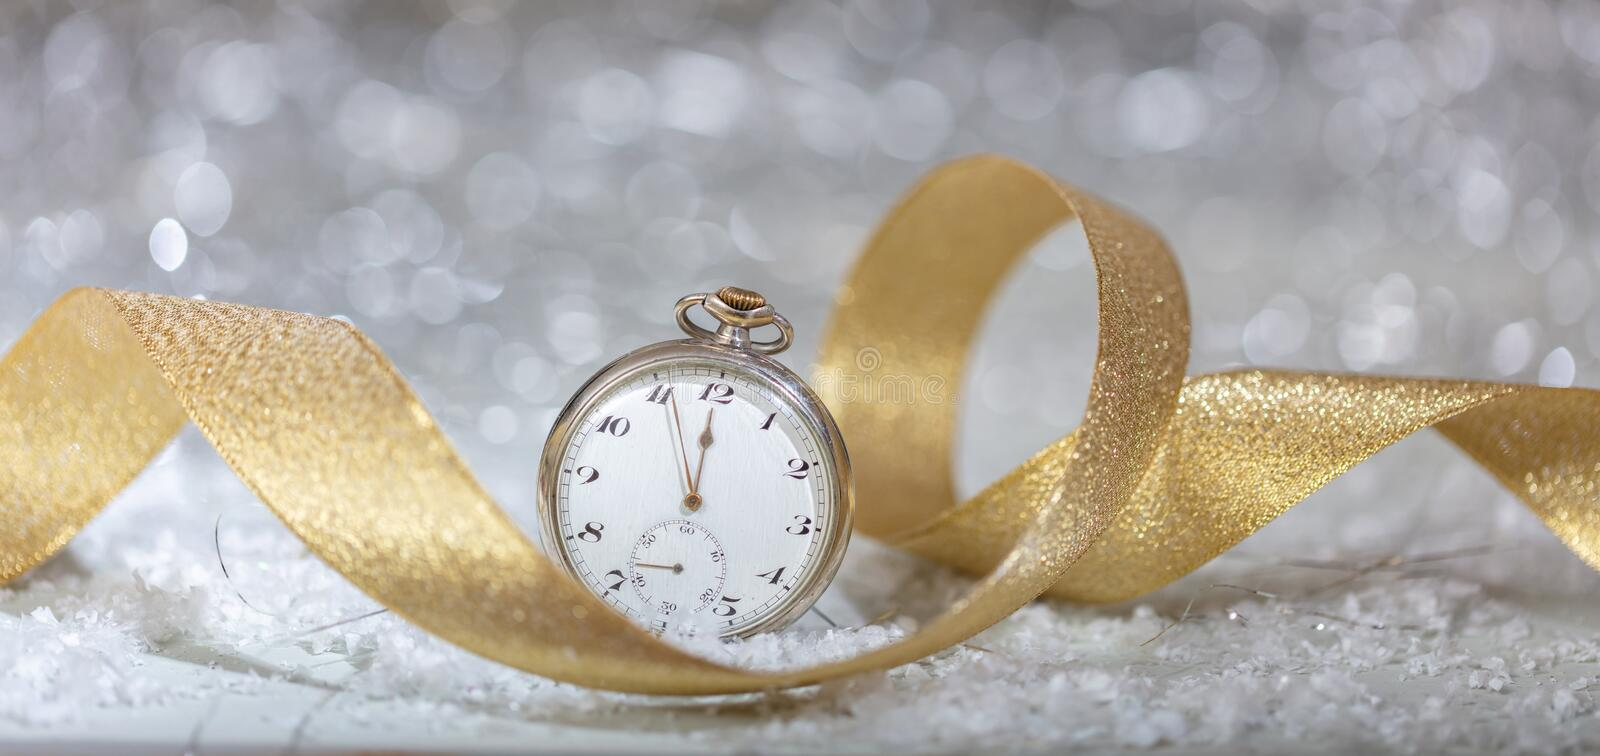 New Years eve celebration party. Minutes to midnight on an old watch, bokeh festive background royalty free stock image